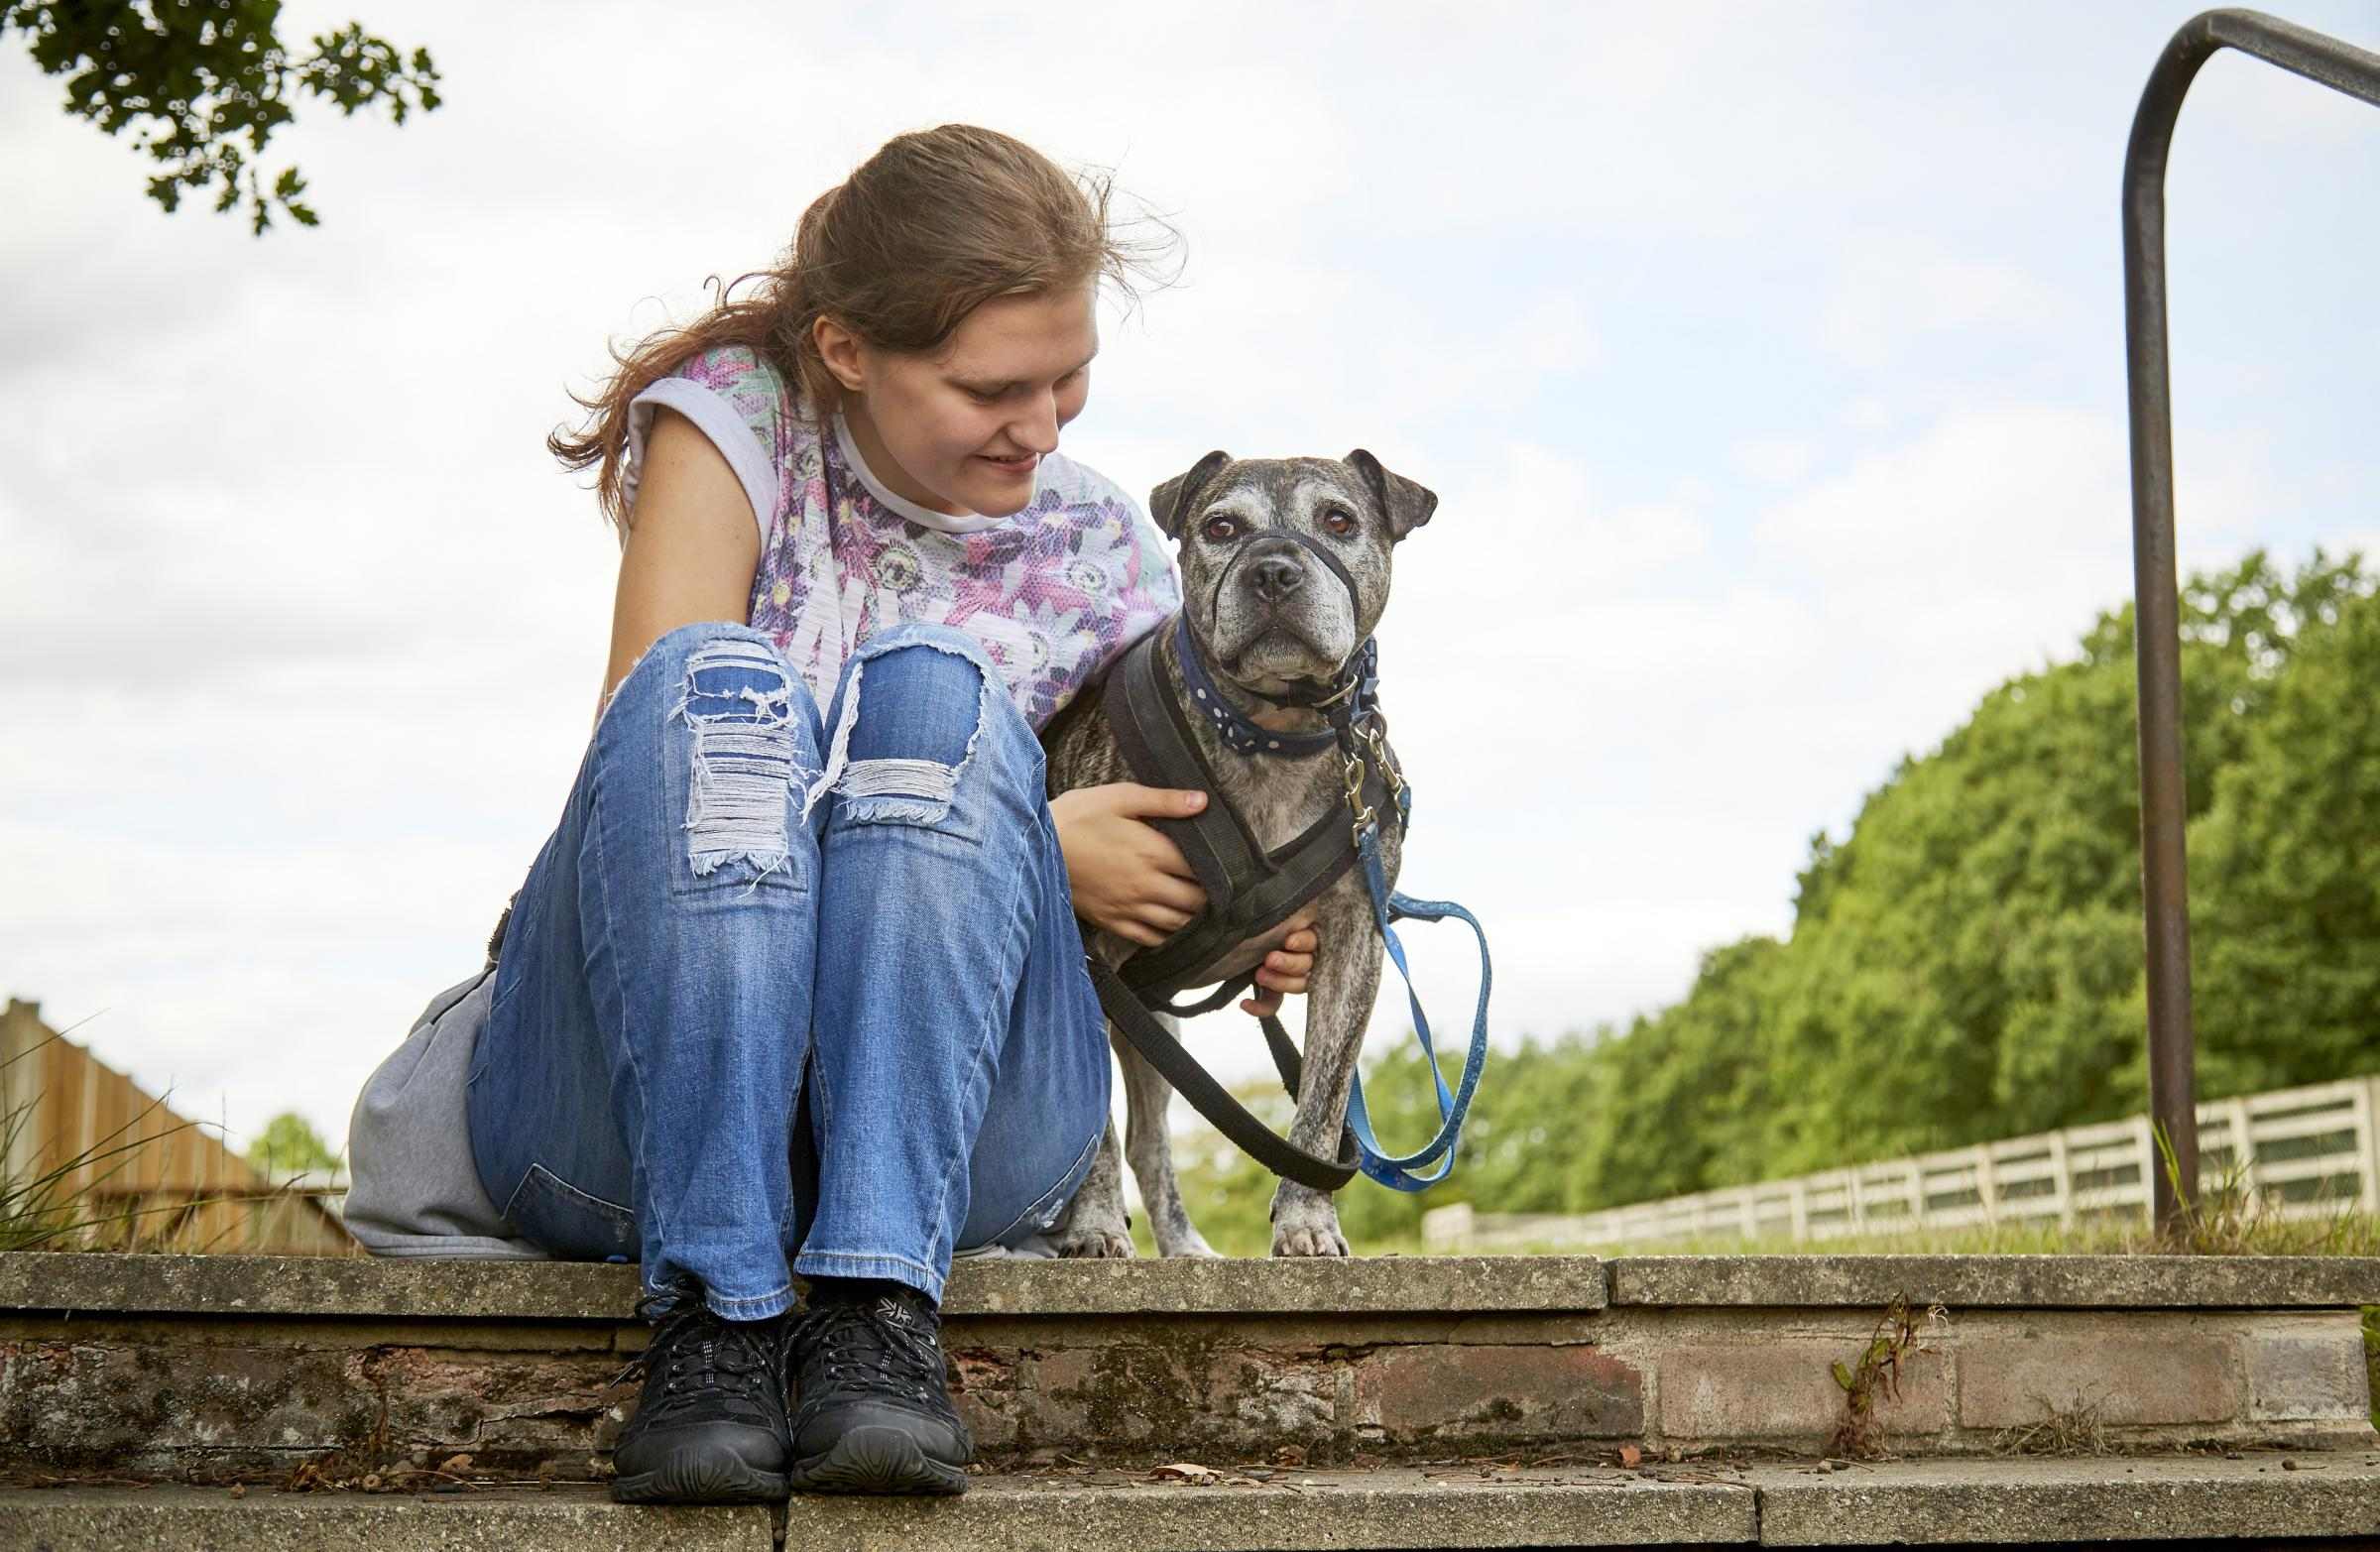 A photograph from RSPCA campaign Paws4Change